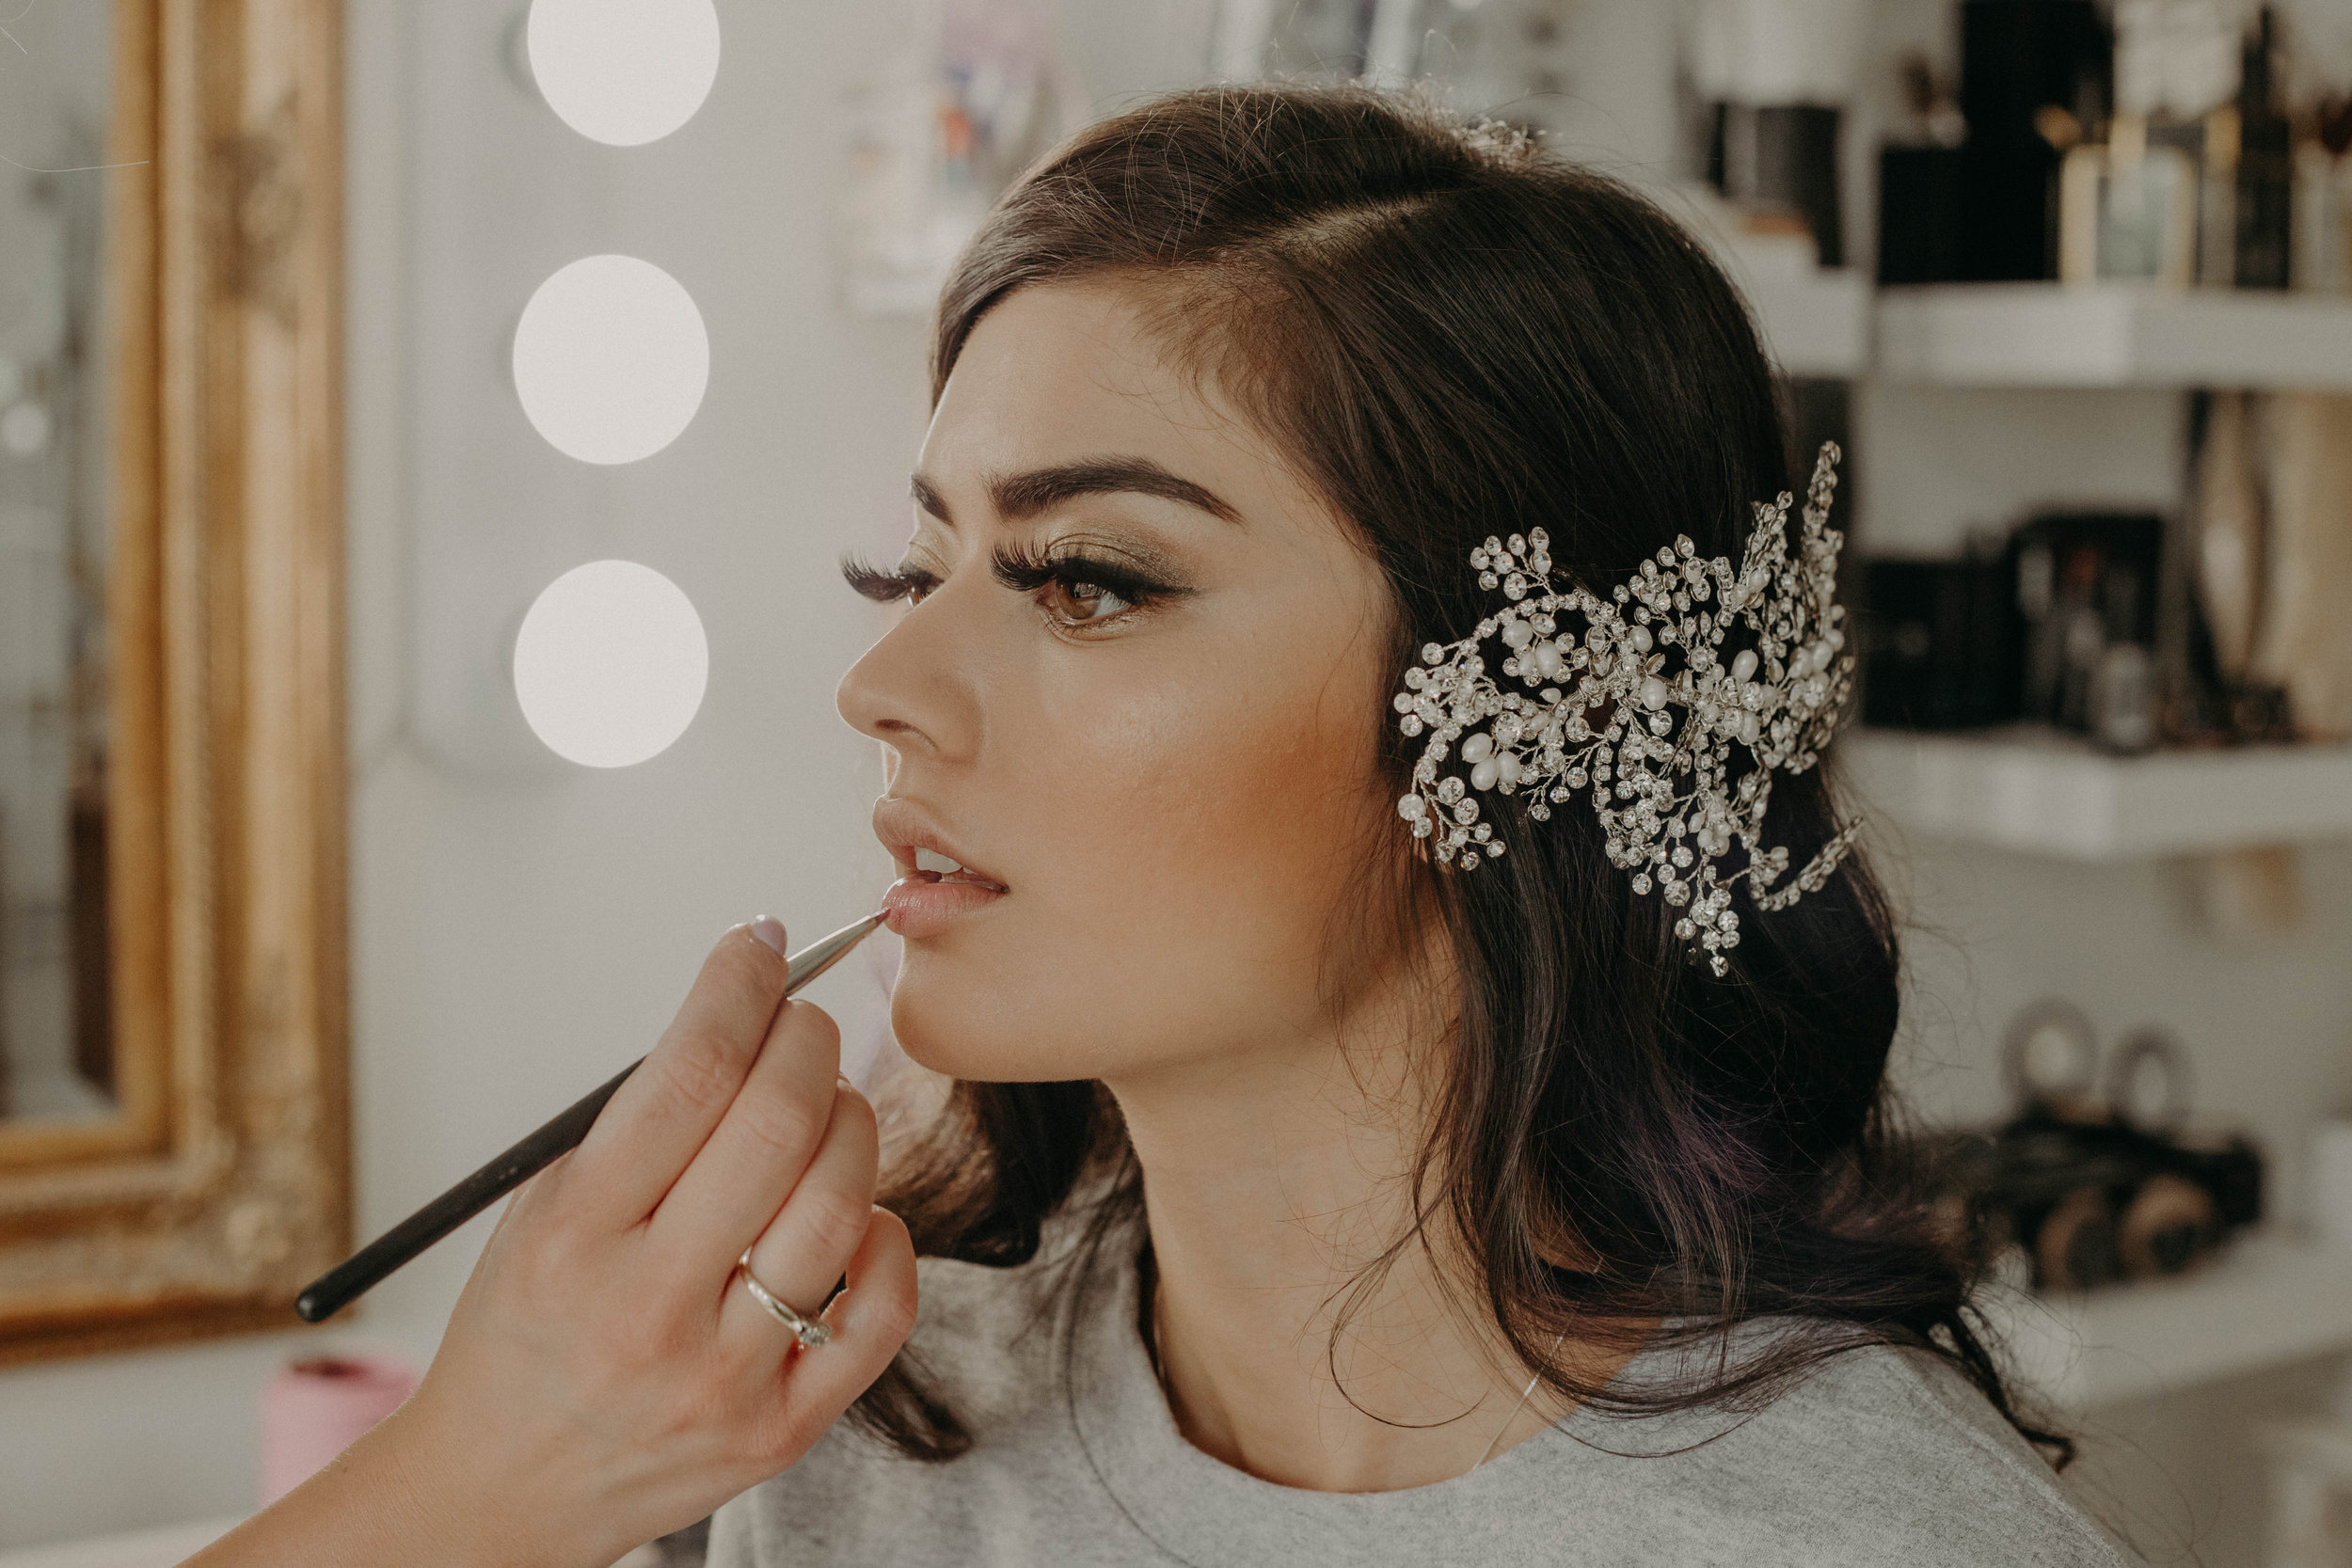 Special Event Makeup - $100.00*All makeup services include false lashes.